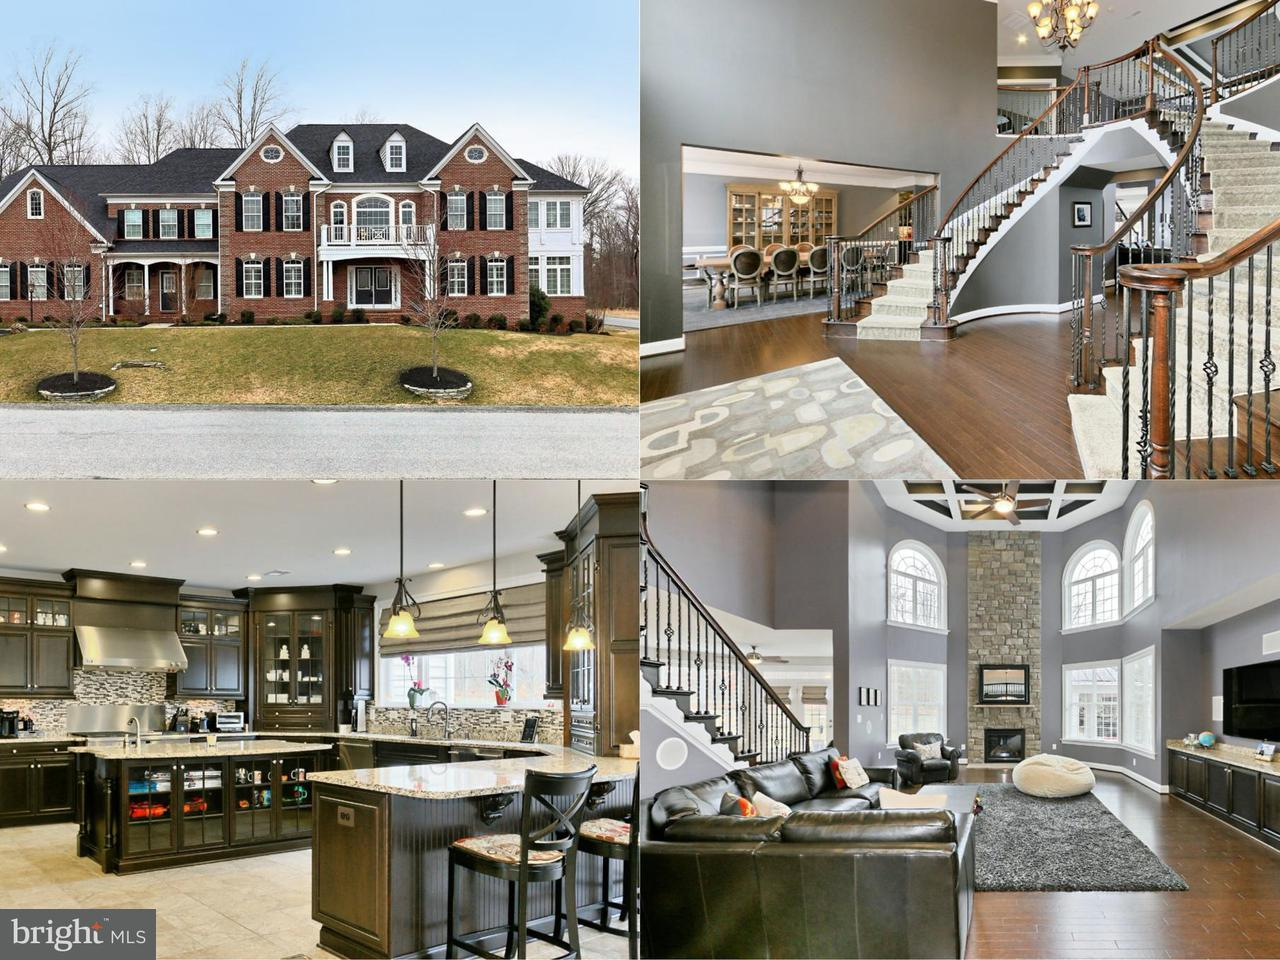 Maison unifamiliale pour l Vente à 22391 Conservancy Drive 22391 Conservancy Drive Ashburn, Virginia 20148 États-Unis